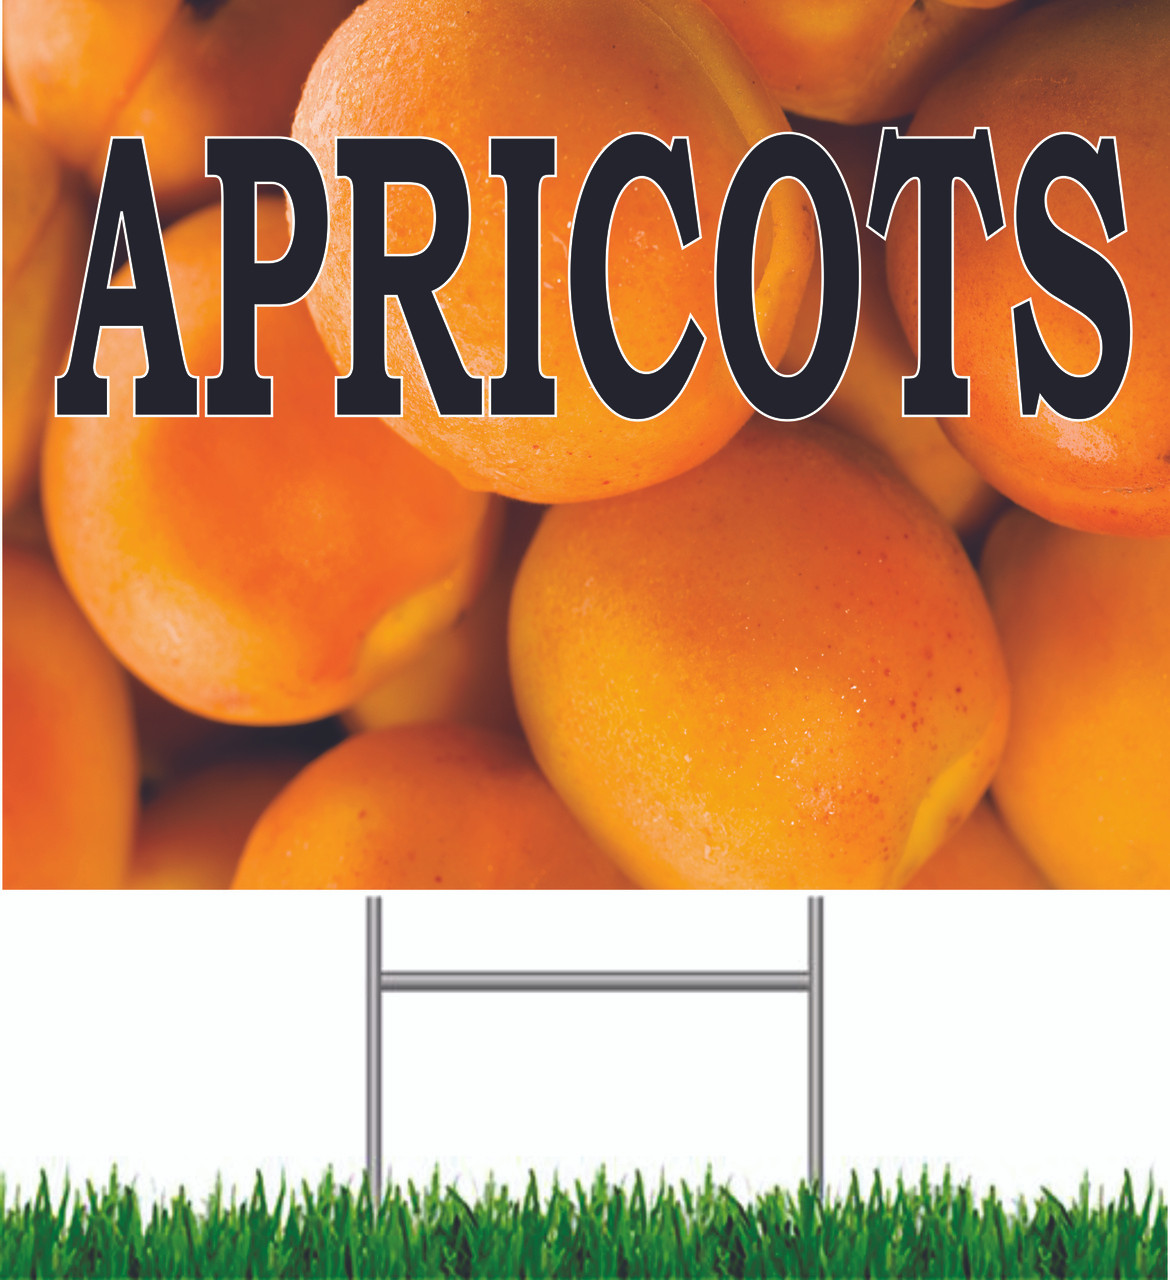 Apricots Yard Sign.